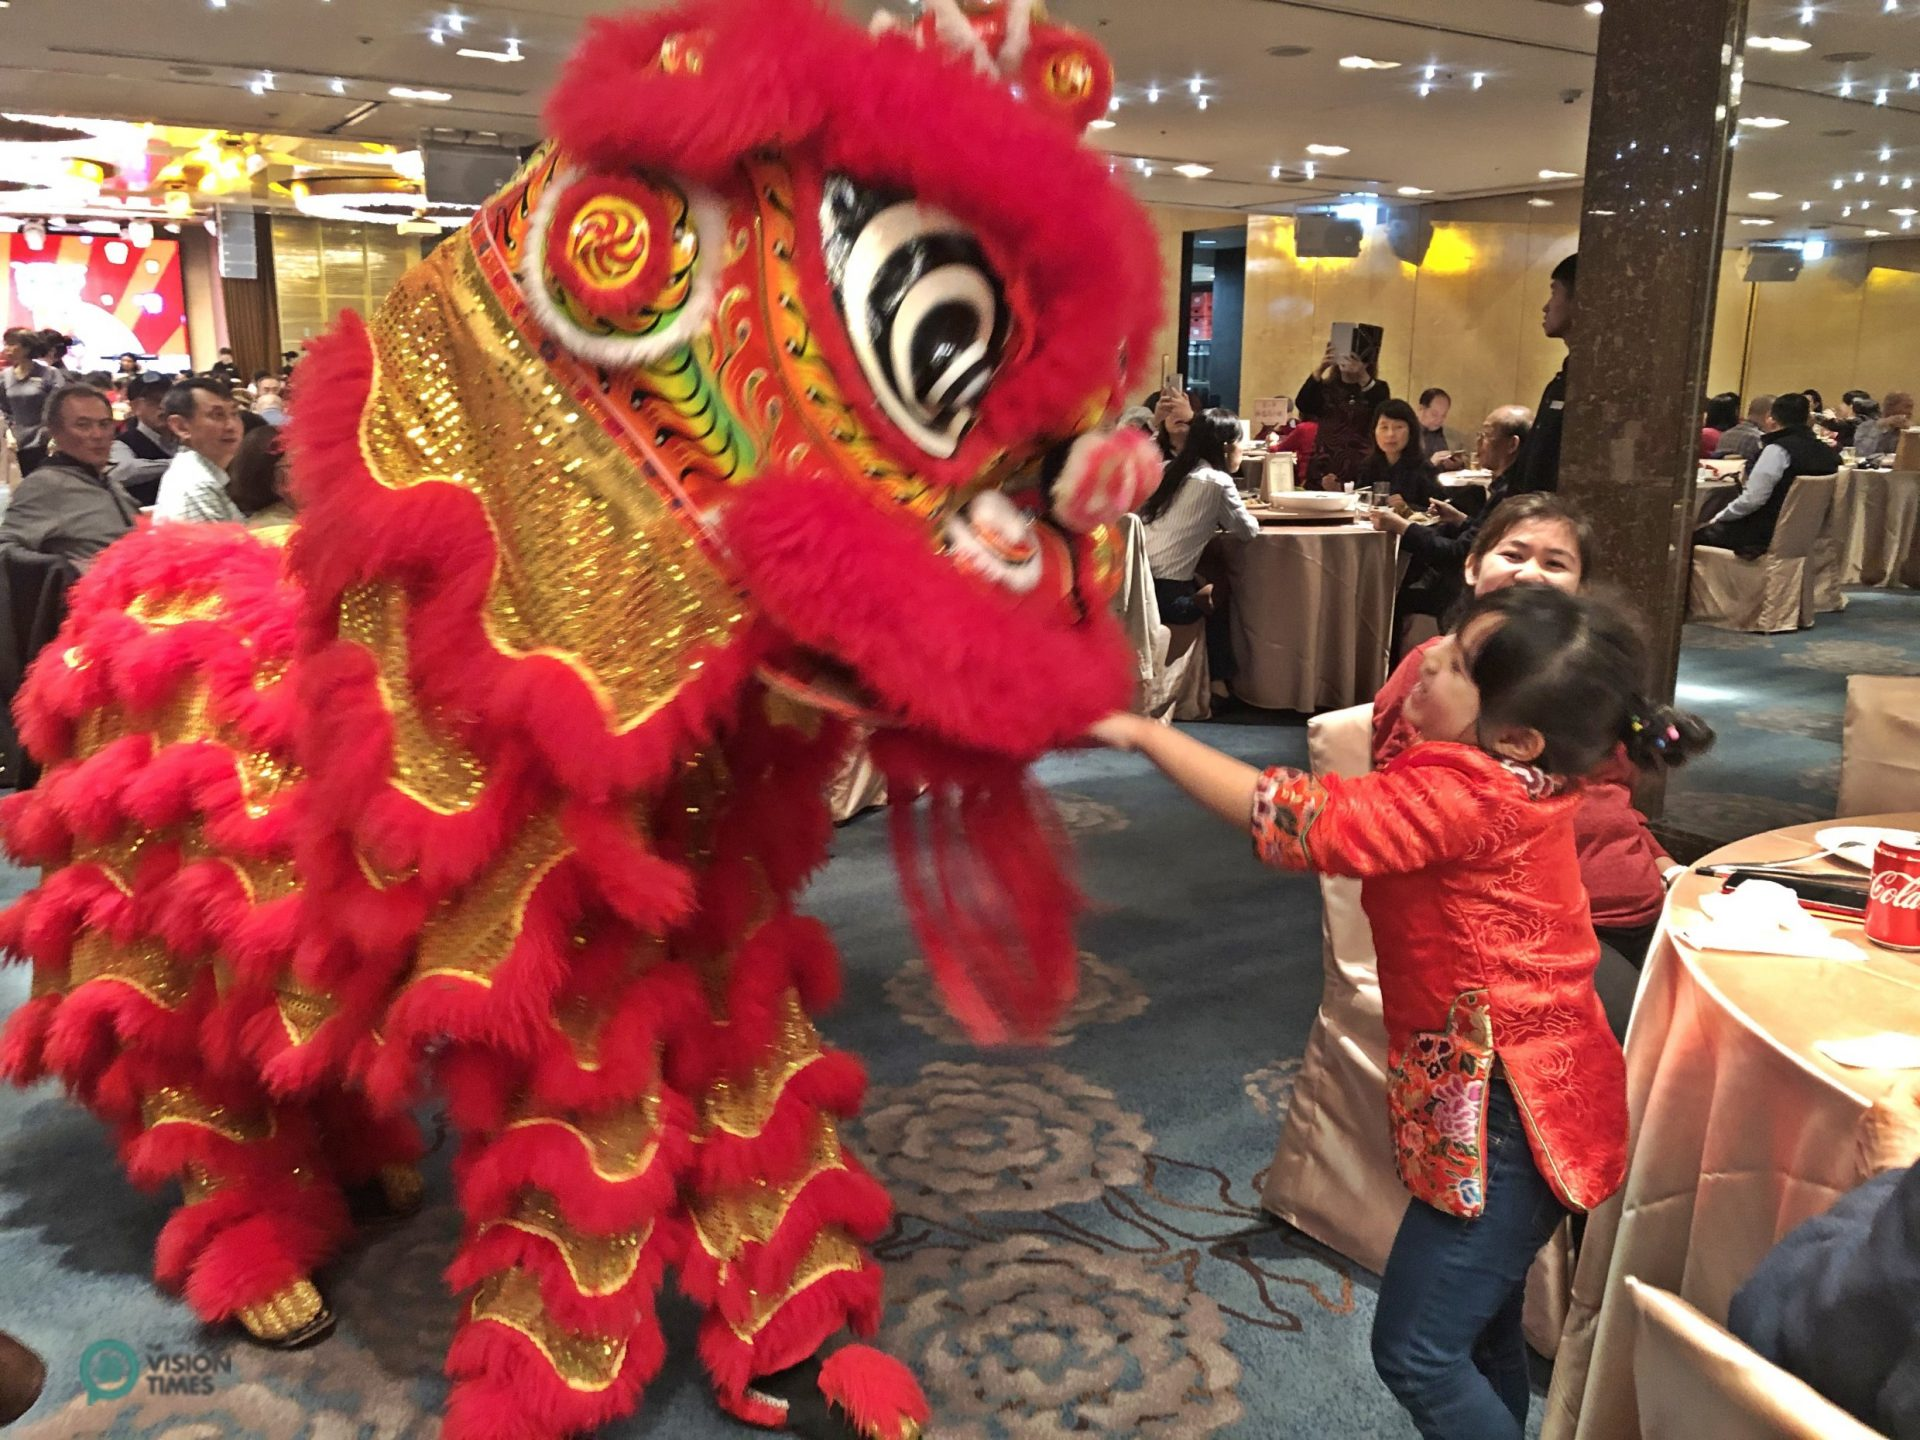 The Lion Dance Performance at the restaurant of a five-star hotel in Taiipei City. (Image: Billy Shyu / Vision Times)